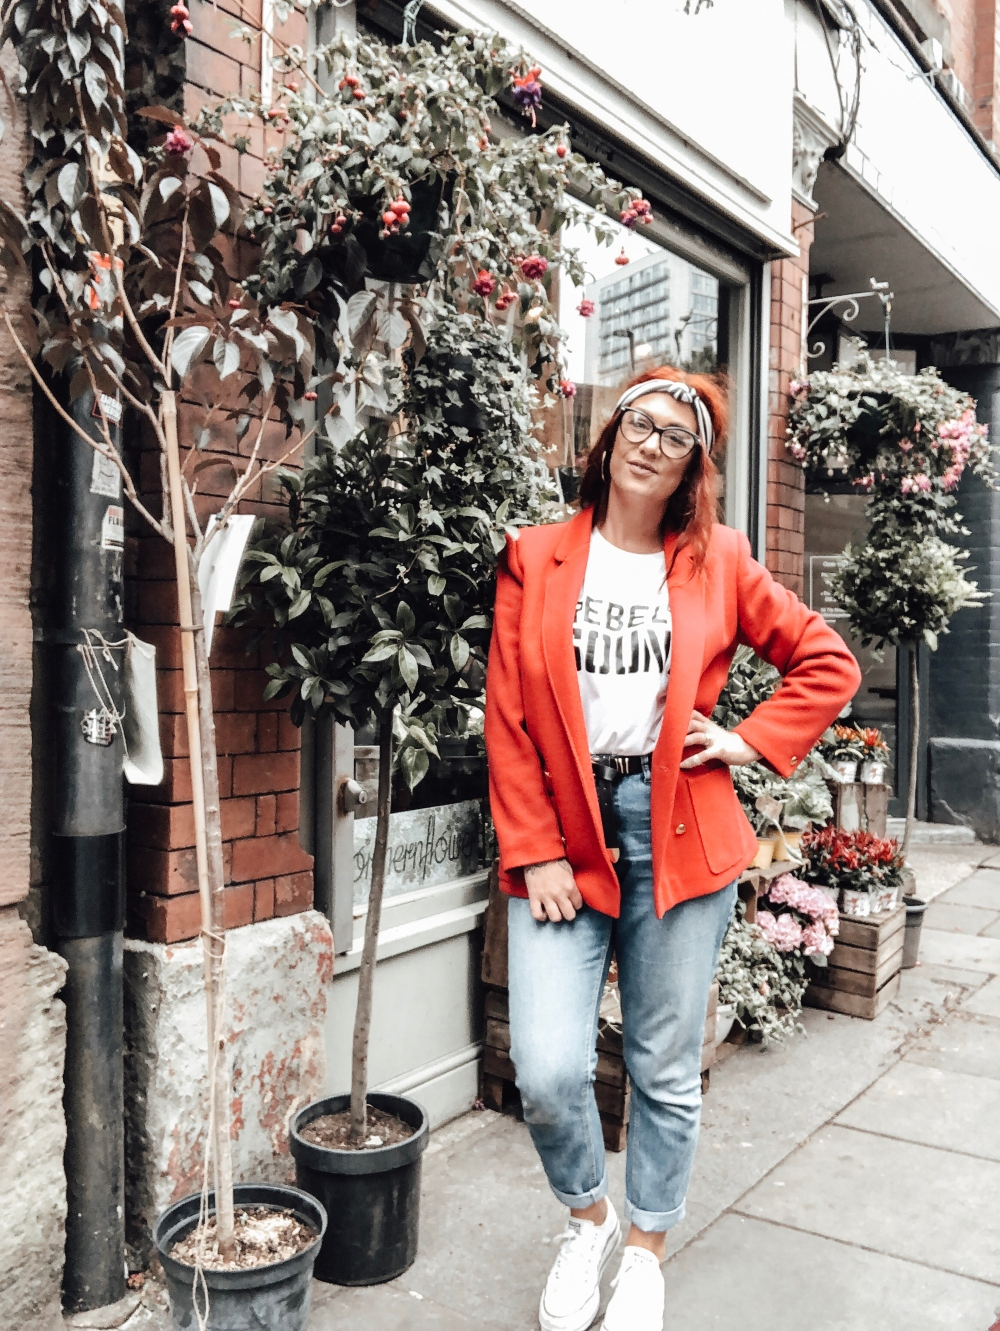 How I found the confidence to wear what I like, when I like #everydaystyle #casualoutfit #mumstyle #thismamastyle #momstyle